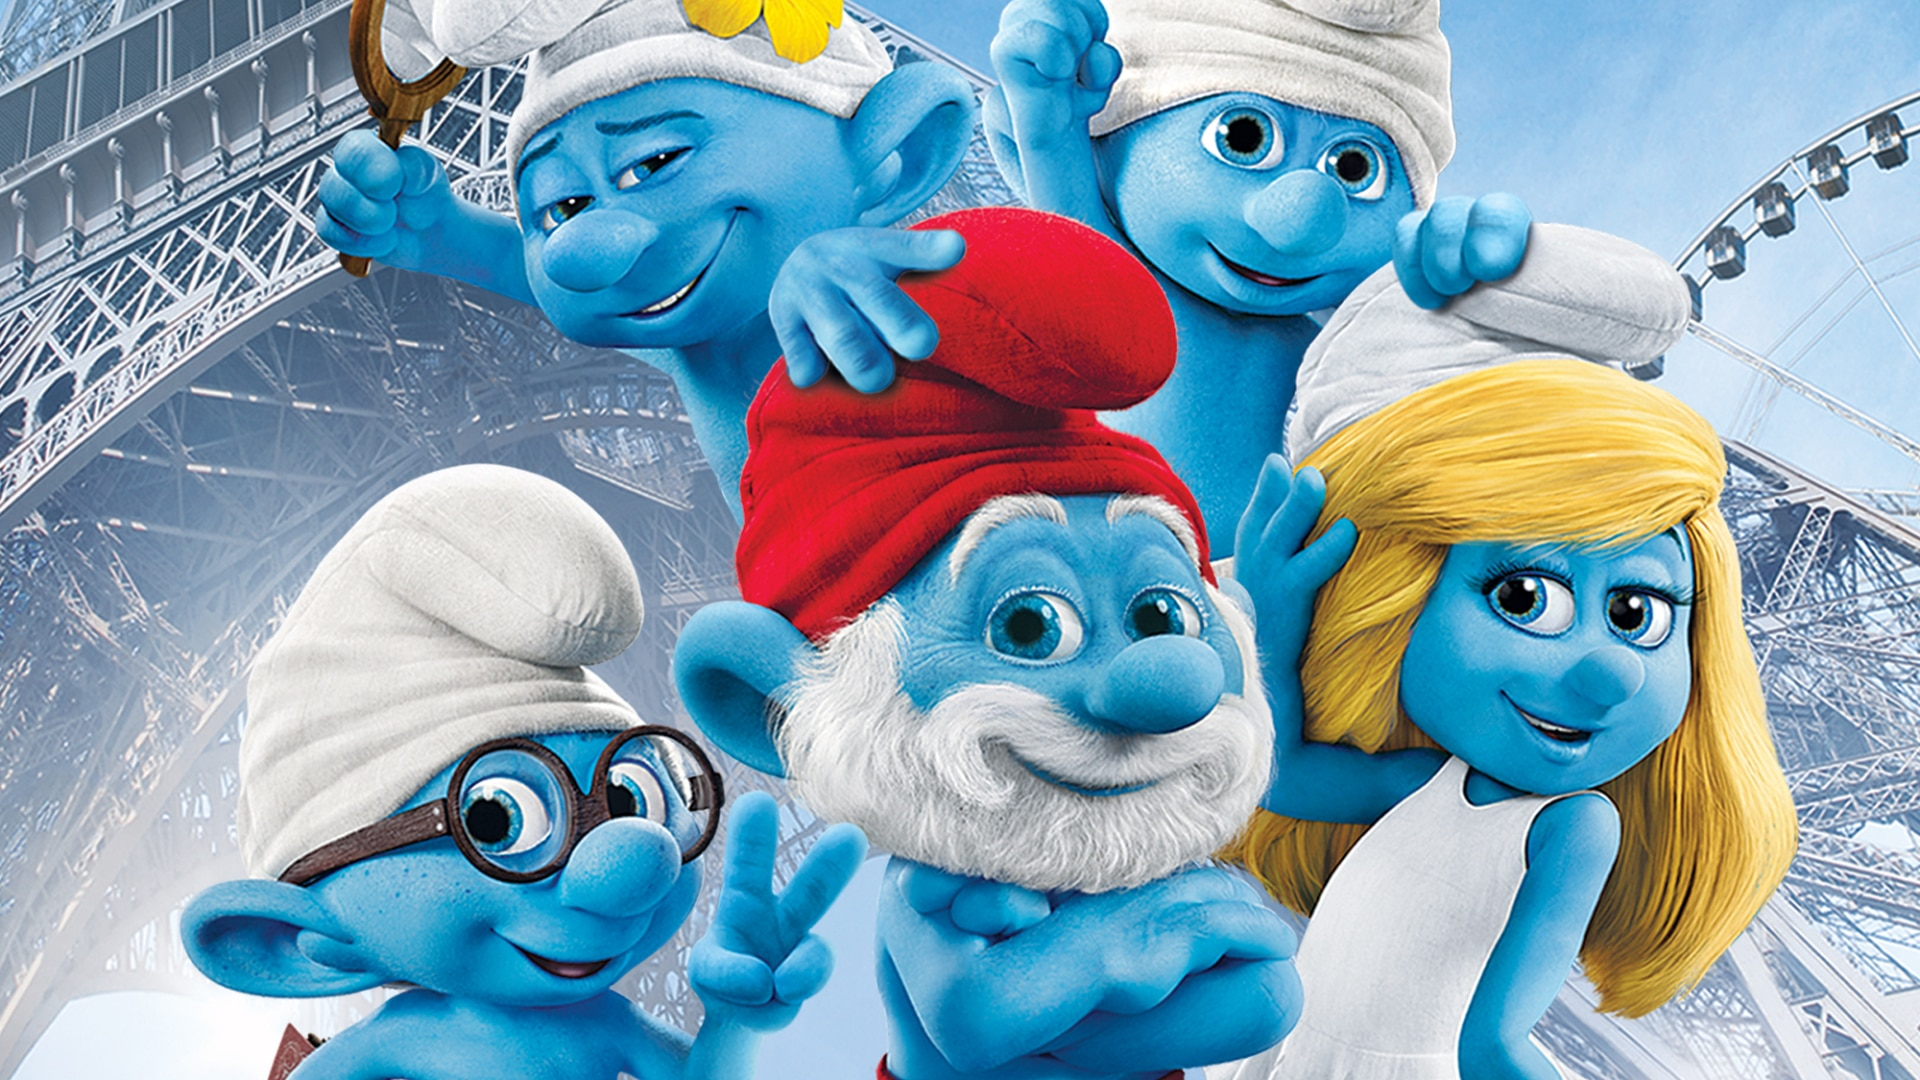 Watch The Smurfs 2 Online Stream Full Movie Nowtv Free Trial